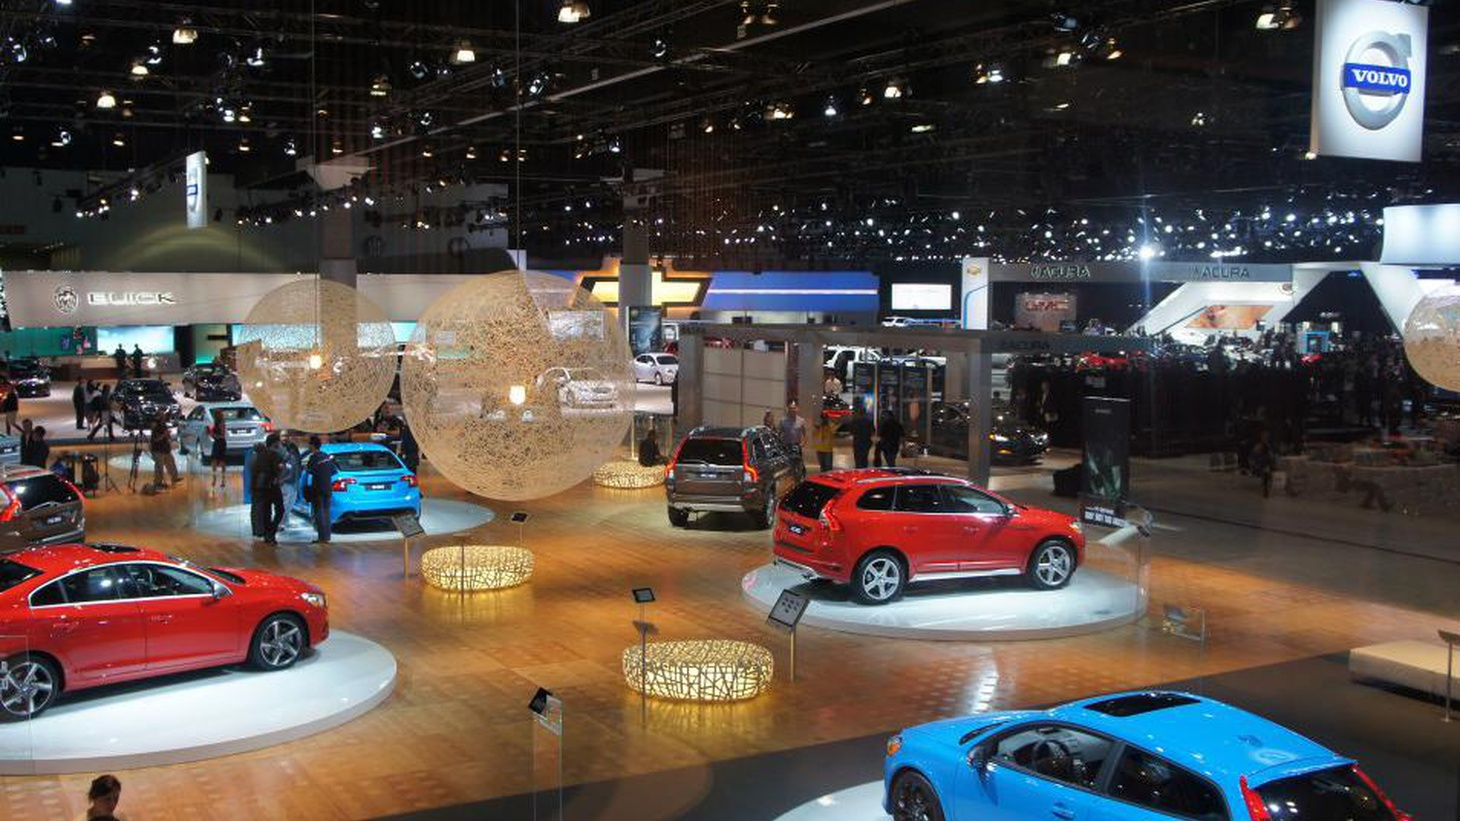 The LA Auto Show opens tomorrow. Will economic recovery and advanced technology attract a new generation that's losing interest in cars? Also, the strike at LA ports.